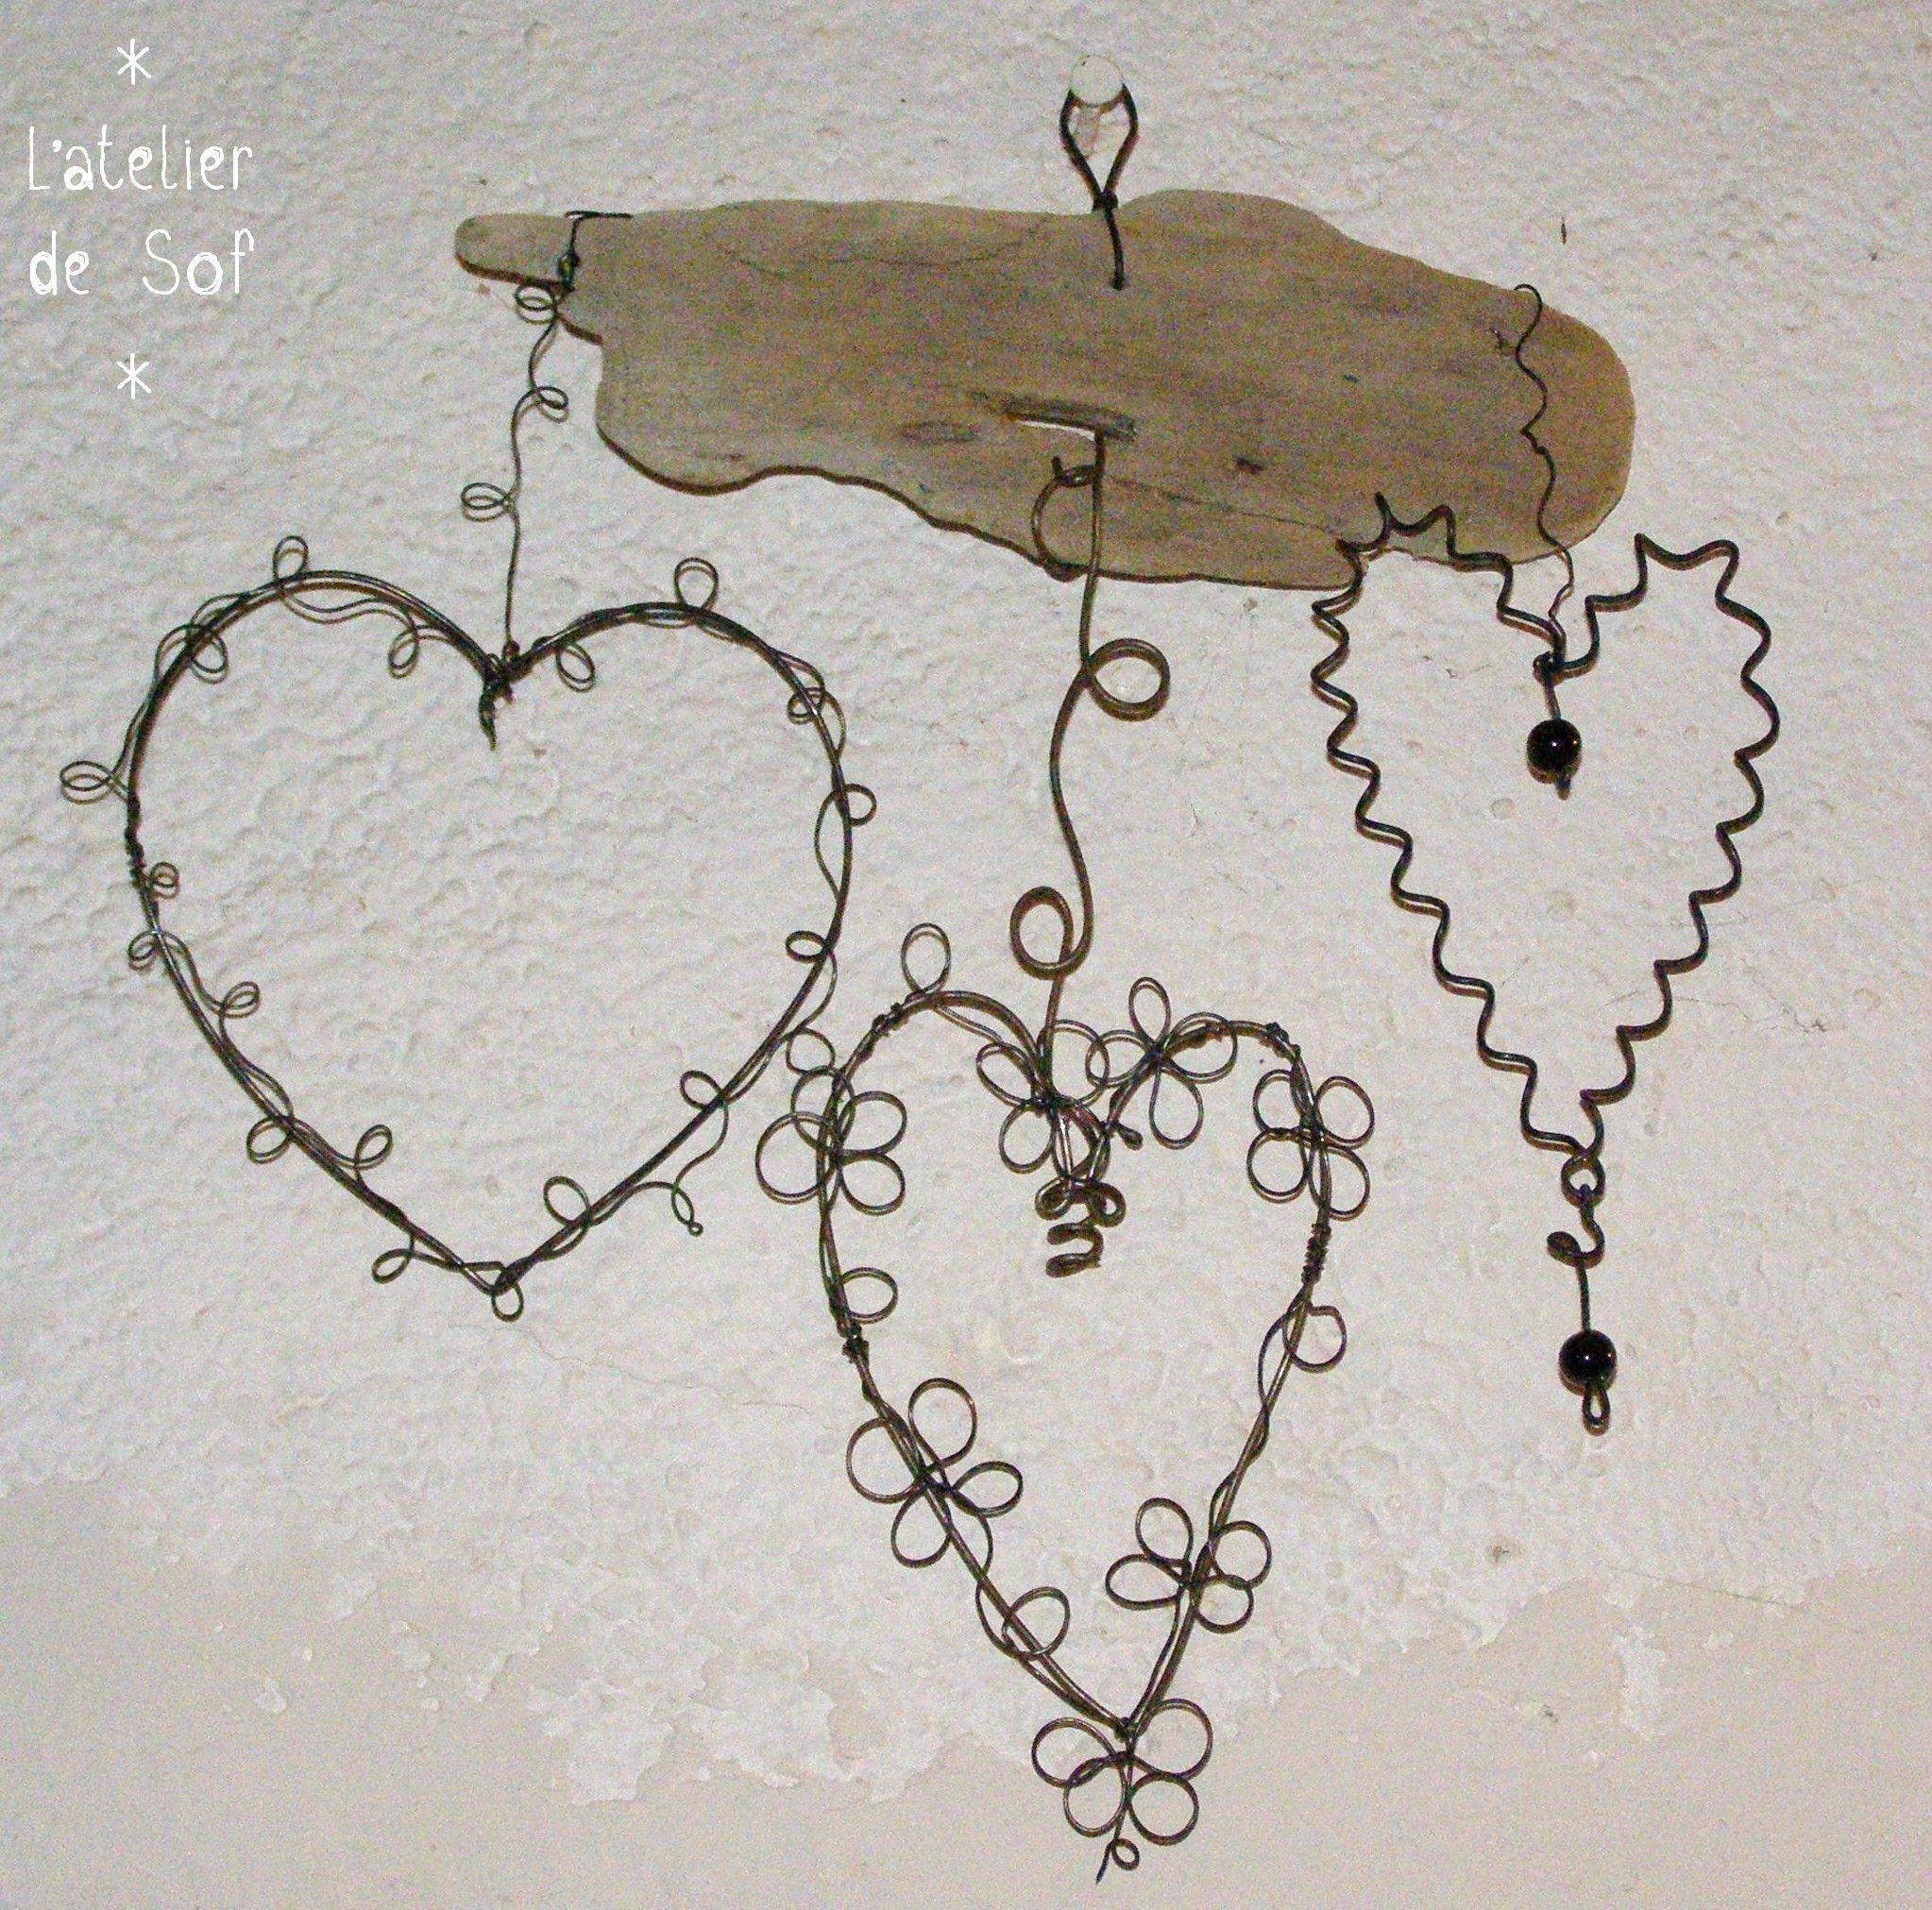 3 coeurs | Art - Wire | Pinterest | Wire crafts, Craft and Wire art